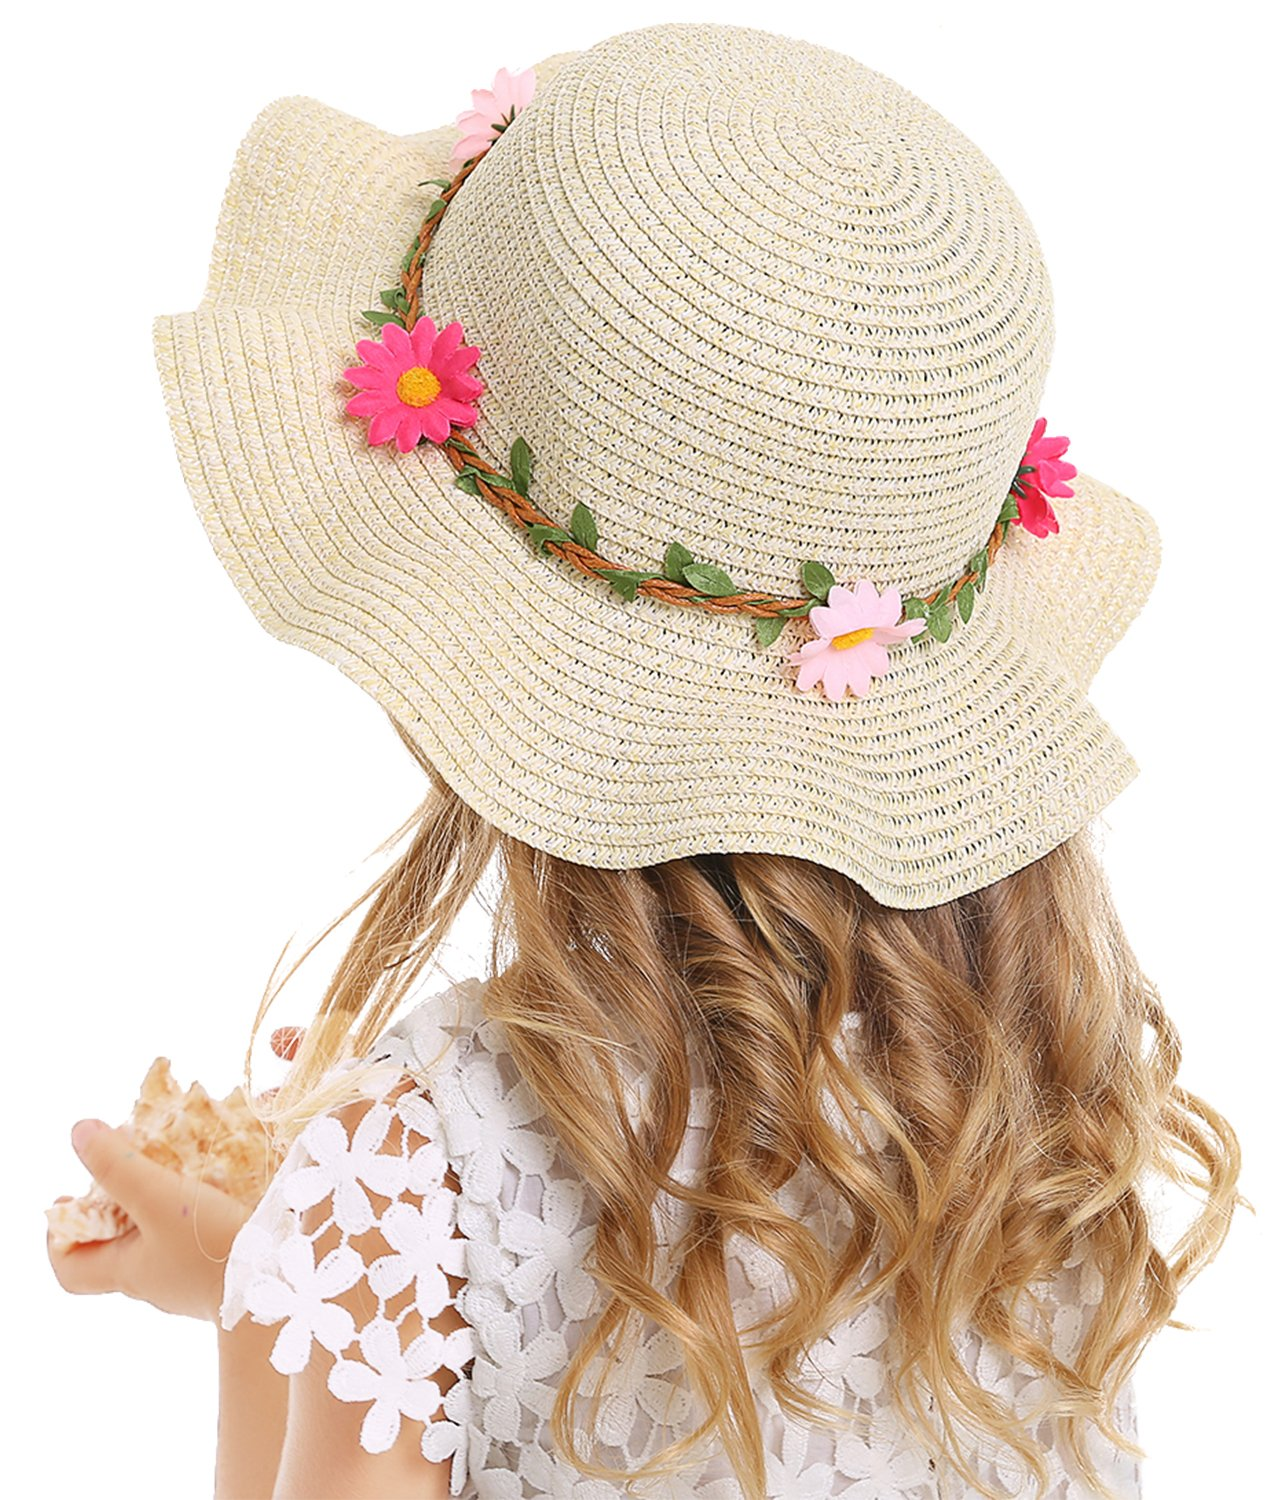 Bienvenu Sun Straw Hat Kids Girls Large Wide Brim Travel Beach Beanie Cap,Beige by Bienvenu (Image #7)